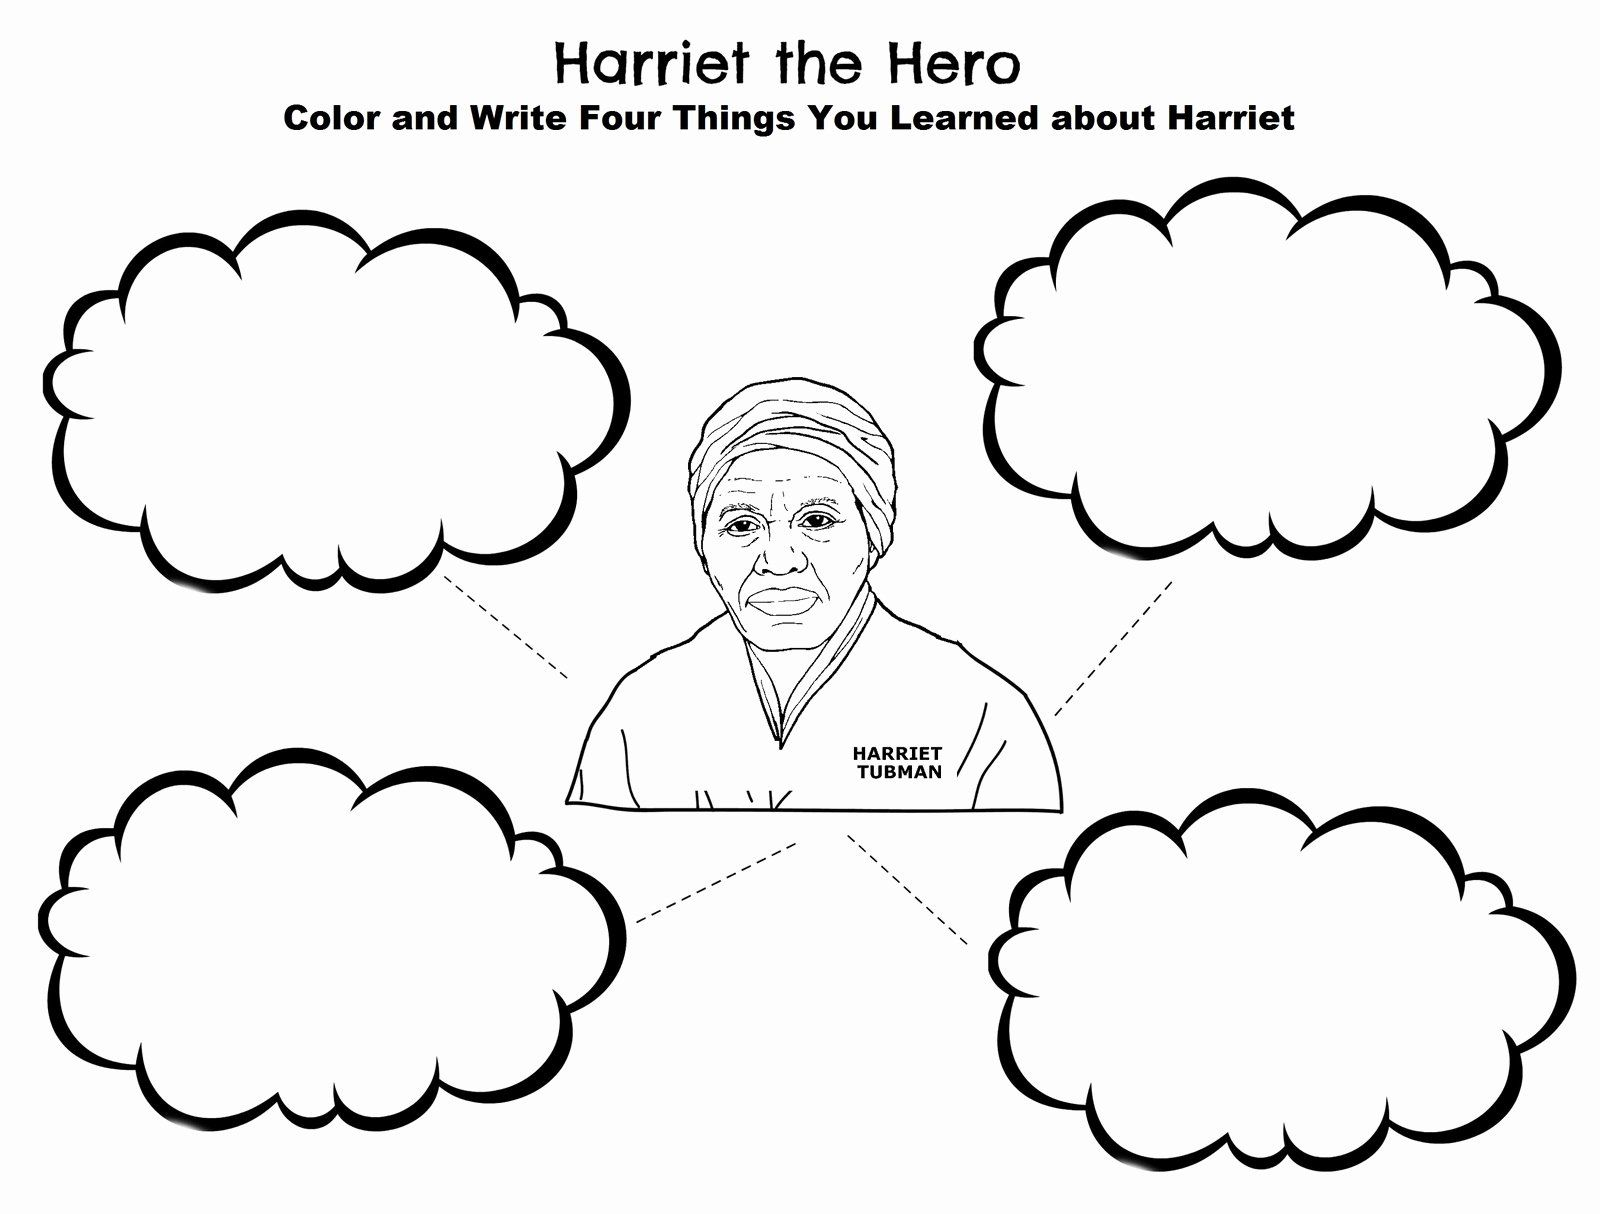 Harriet Tubman Coloring Page New Harriet Tubman The Hero Coloring Page Elsa Coloring Pages Bird Coloring Pages Animal Coloring Pages